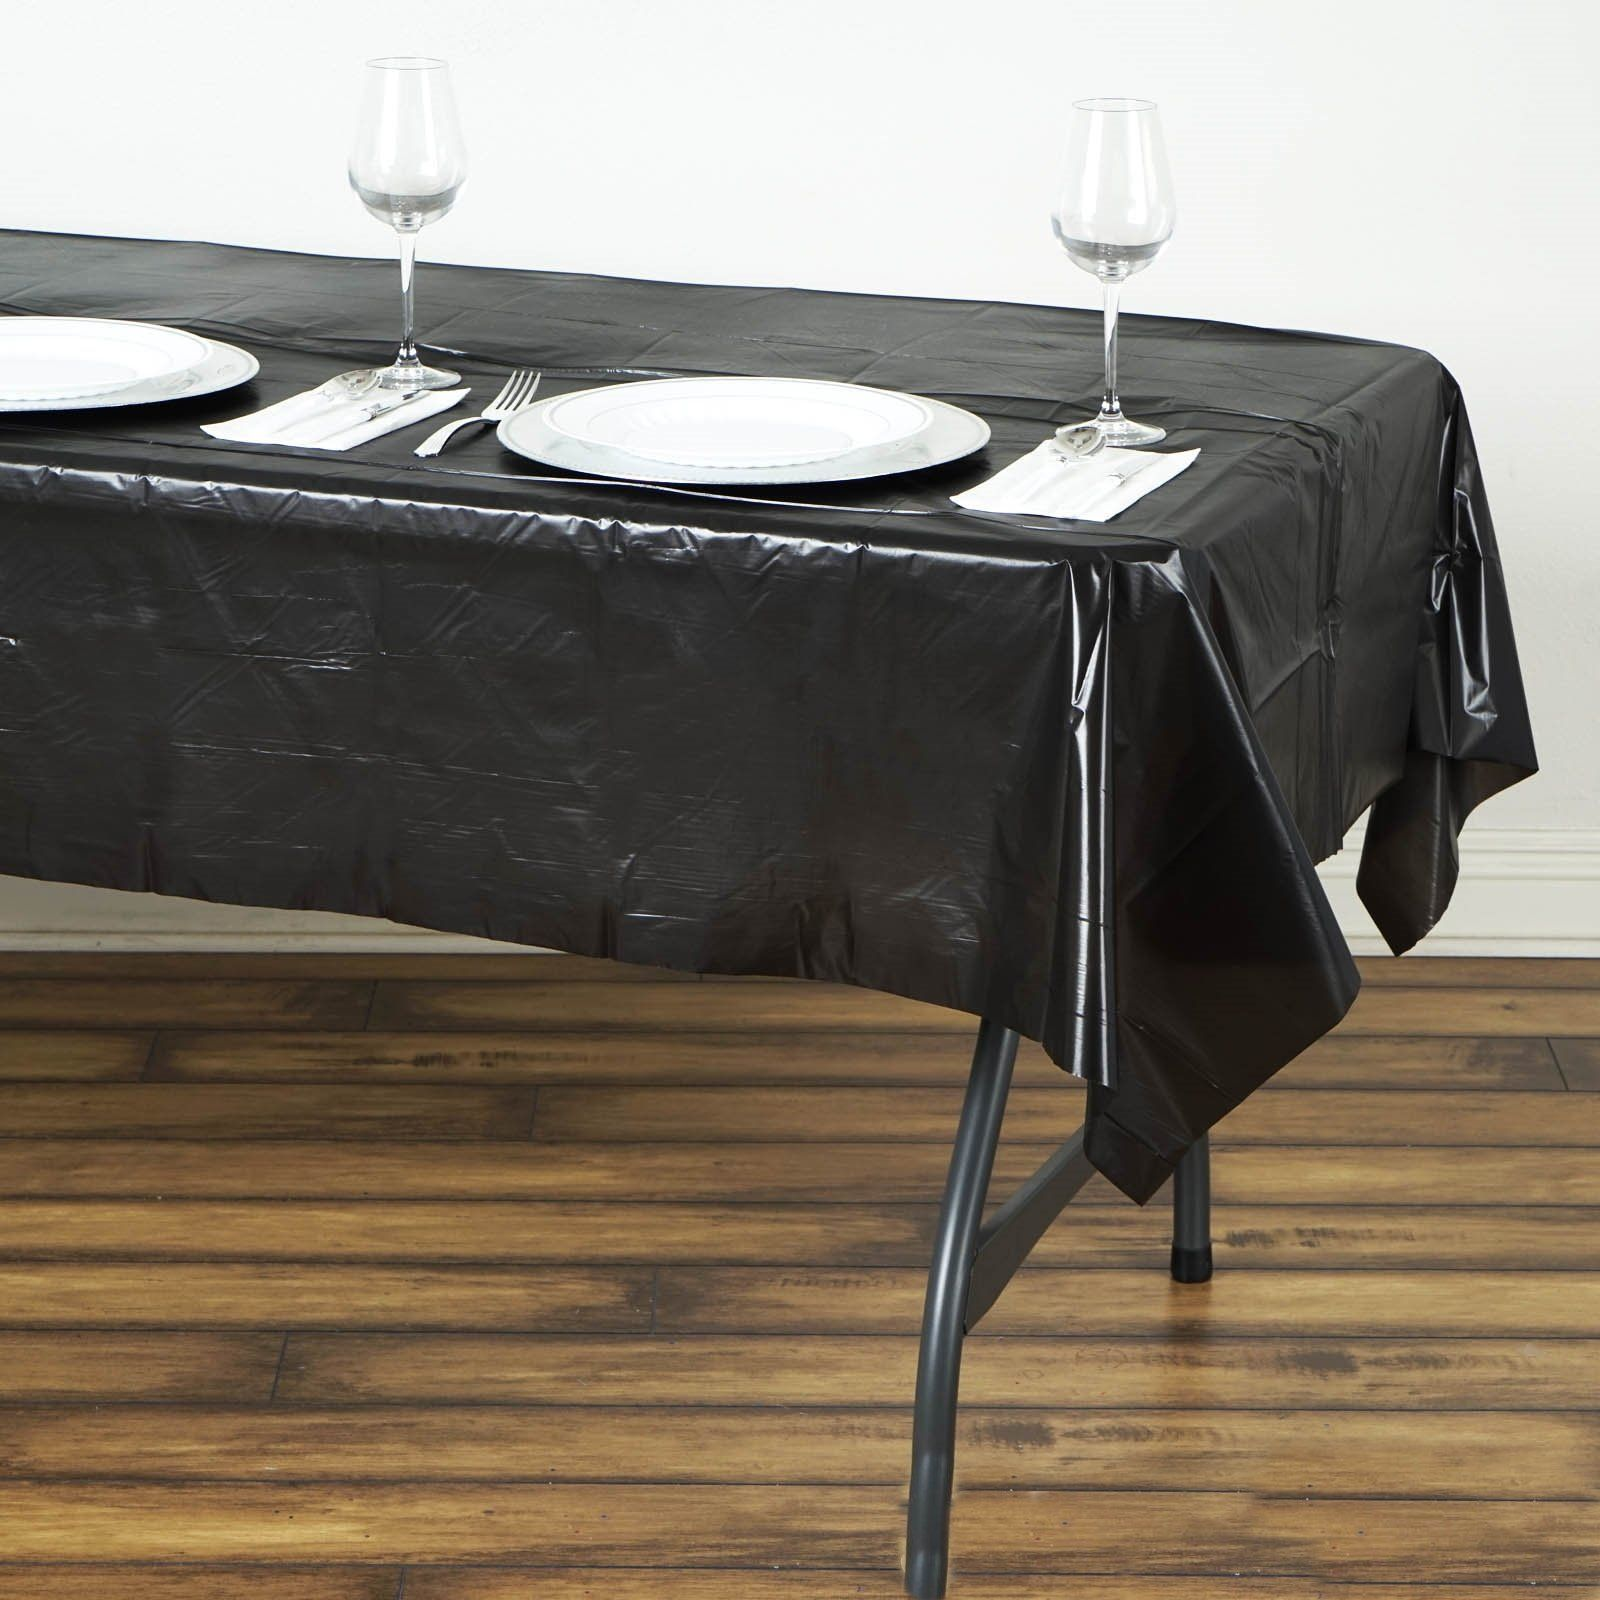 54 X 72 Black 10 Mil Thick Waterproof Tablecloth Pvc Rectangle Disposable Tablecloth In 2020 Waterproof Tablecloth Table Cloth Restaurant Decor